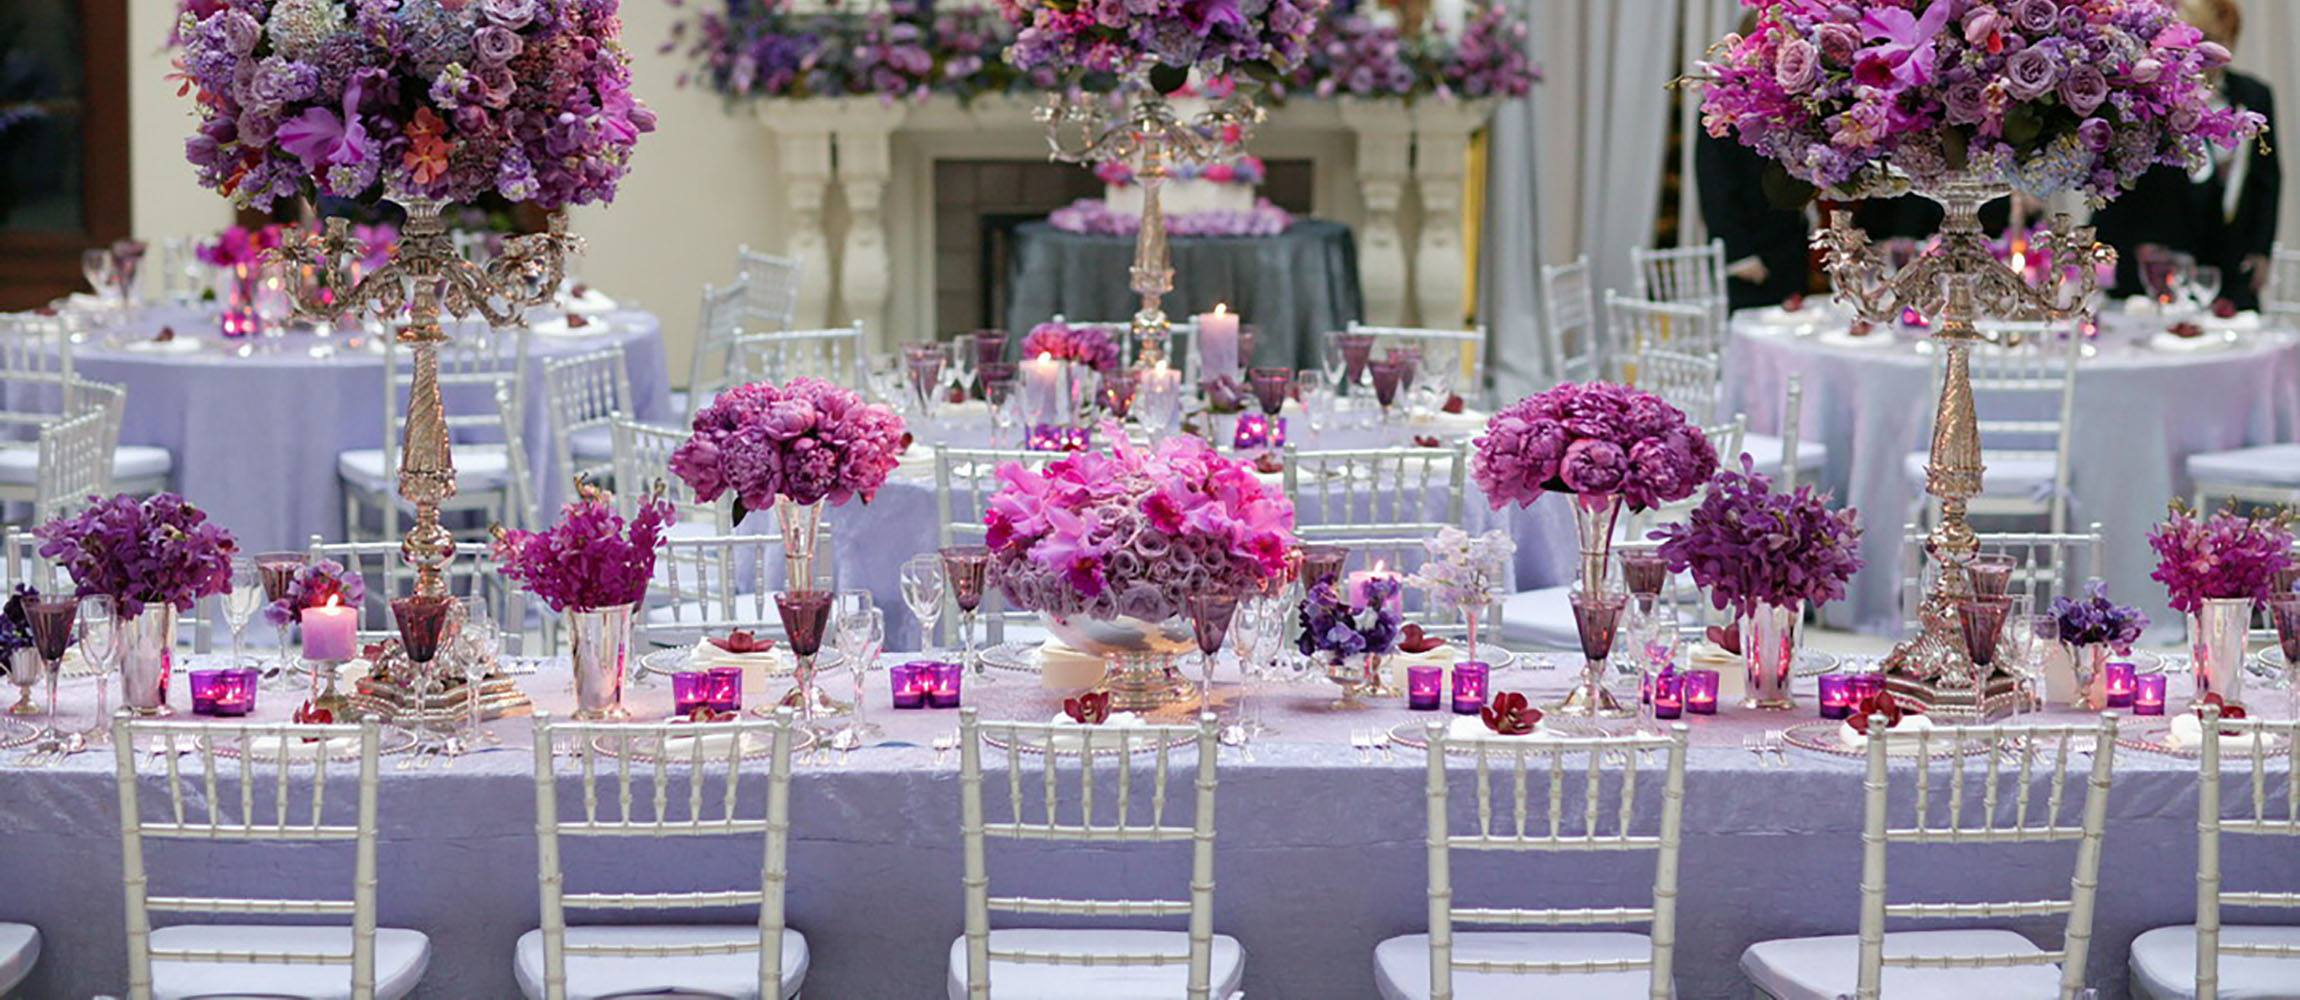 Wedding Chair Rentals.Wedding Table And Chair Rentals In Broward Miami Palm Beach Allure